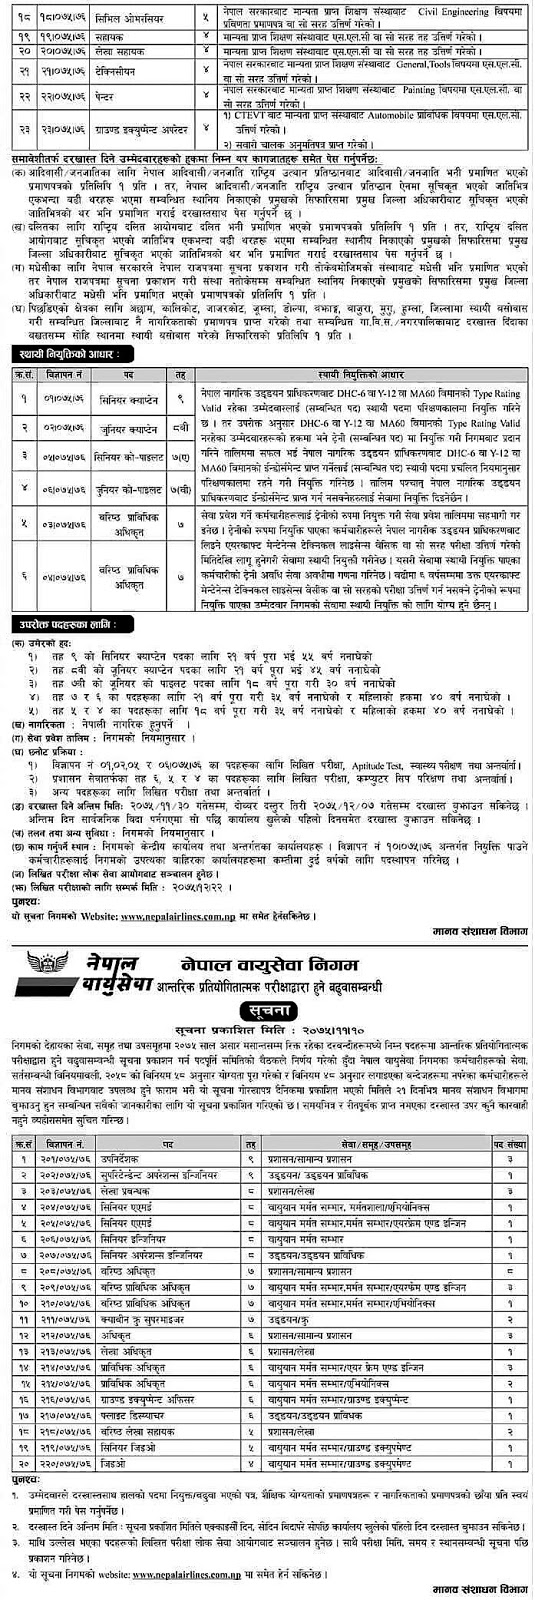 Nepal Airlines Corporation Vacancy2